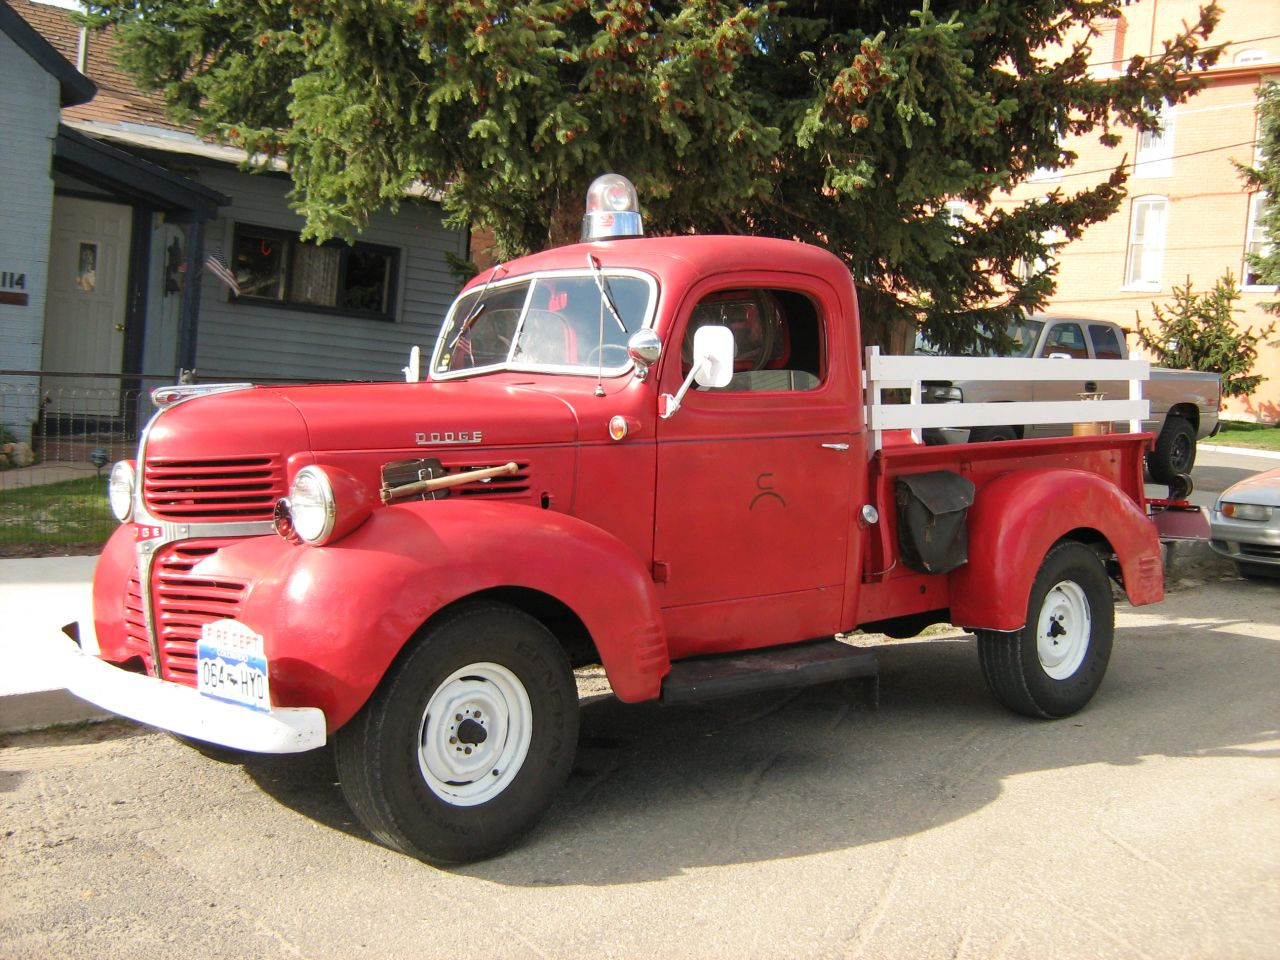 Down On The Two Mile High Street 1947 Dodge Fire Truck